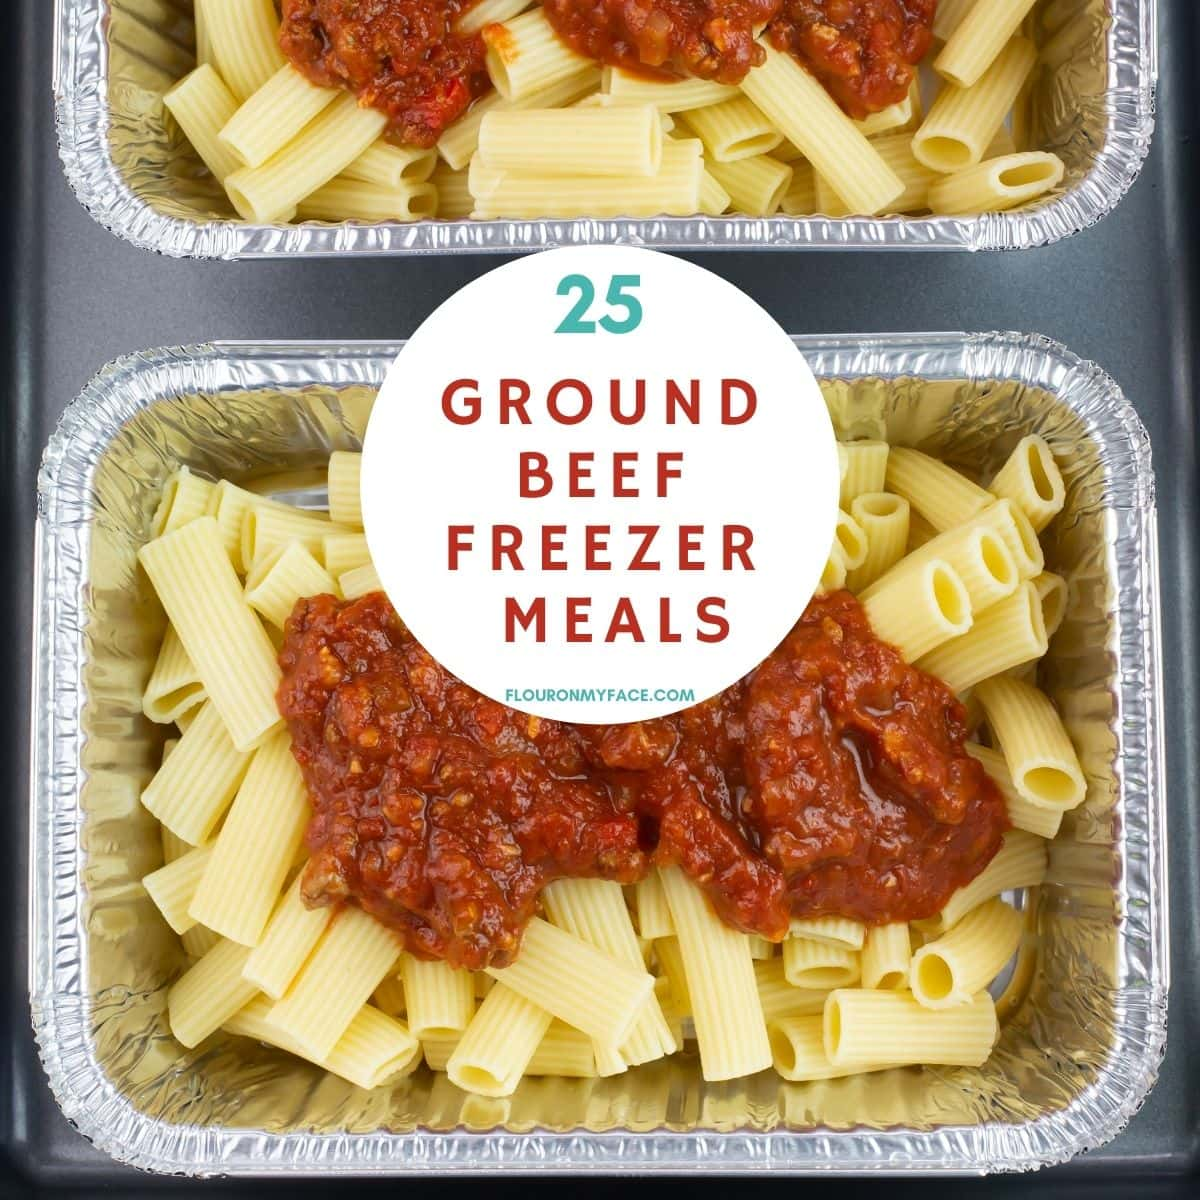 Filled trays of ground beef freezer meals